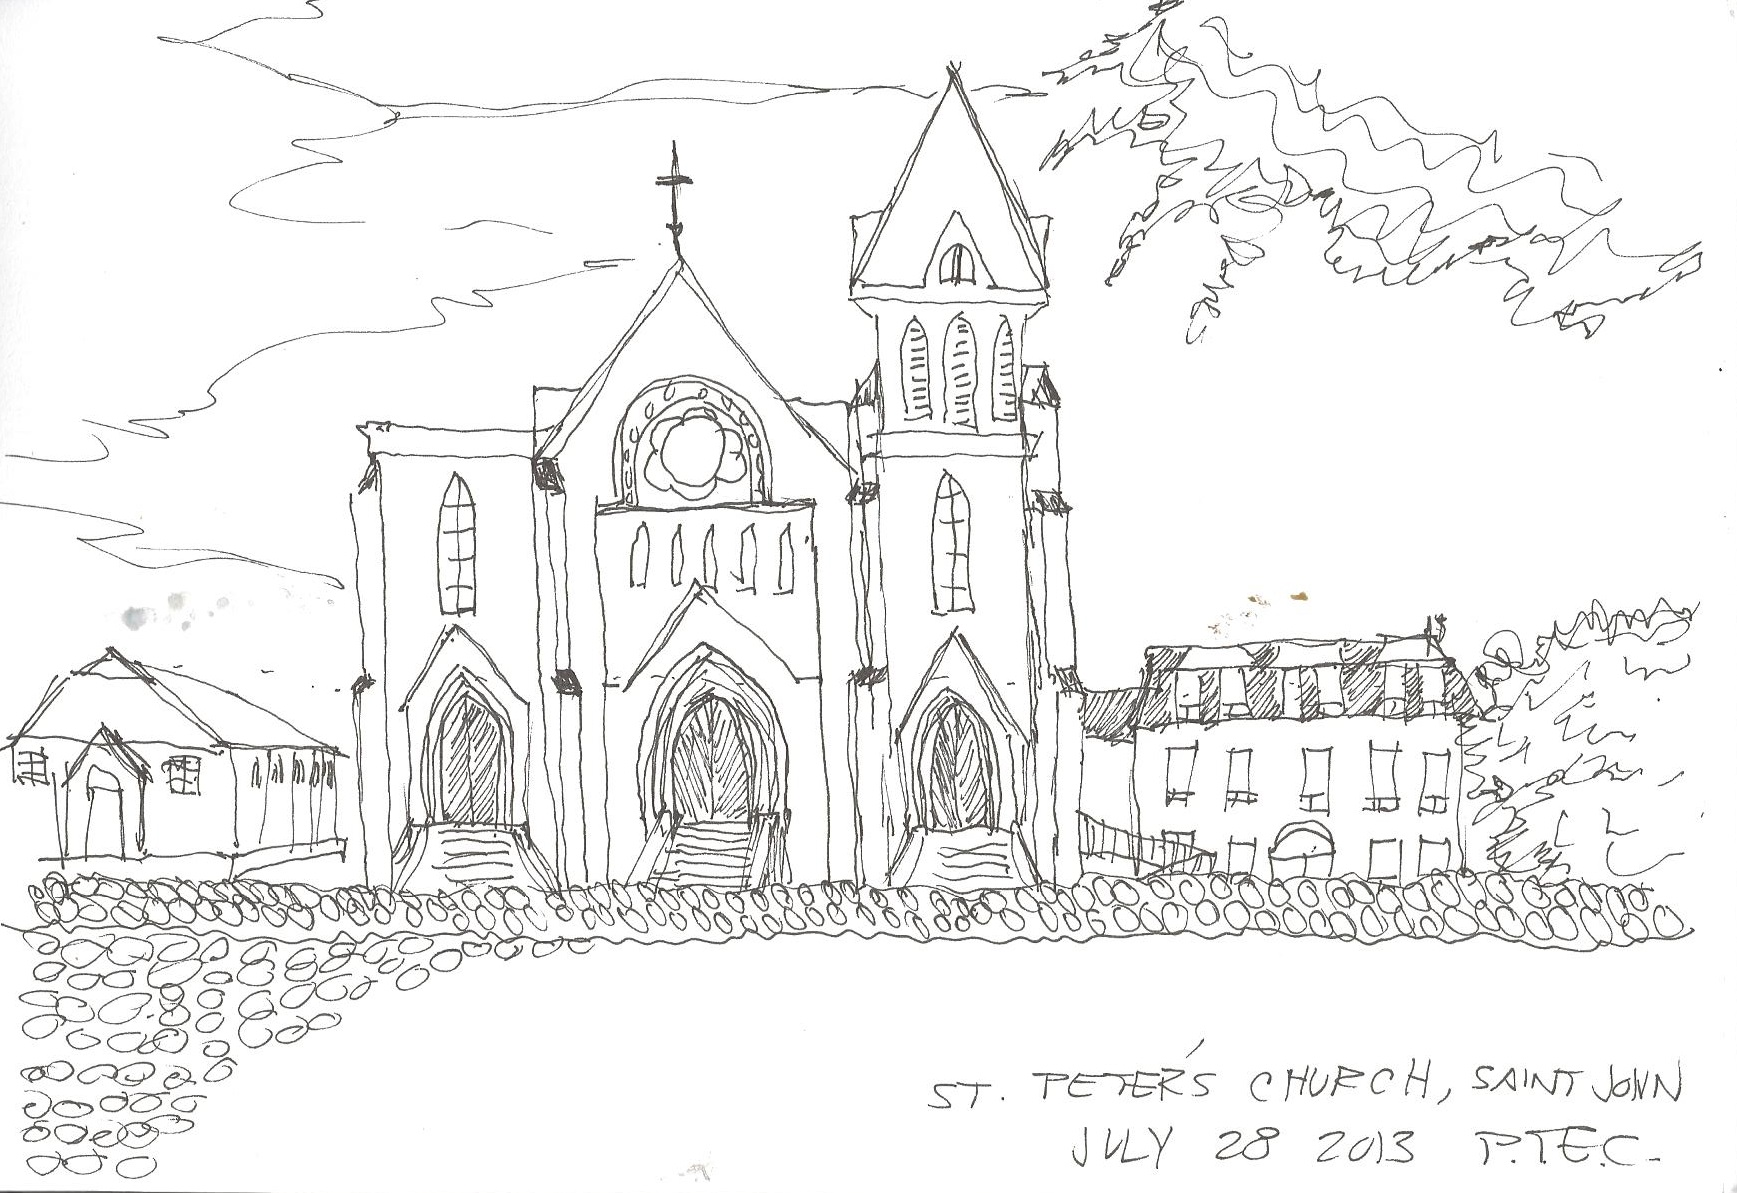 File:St peters church sketch.jpg - Wikimedia Commons